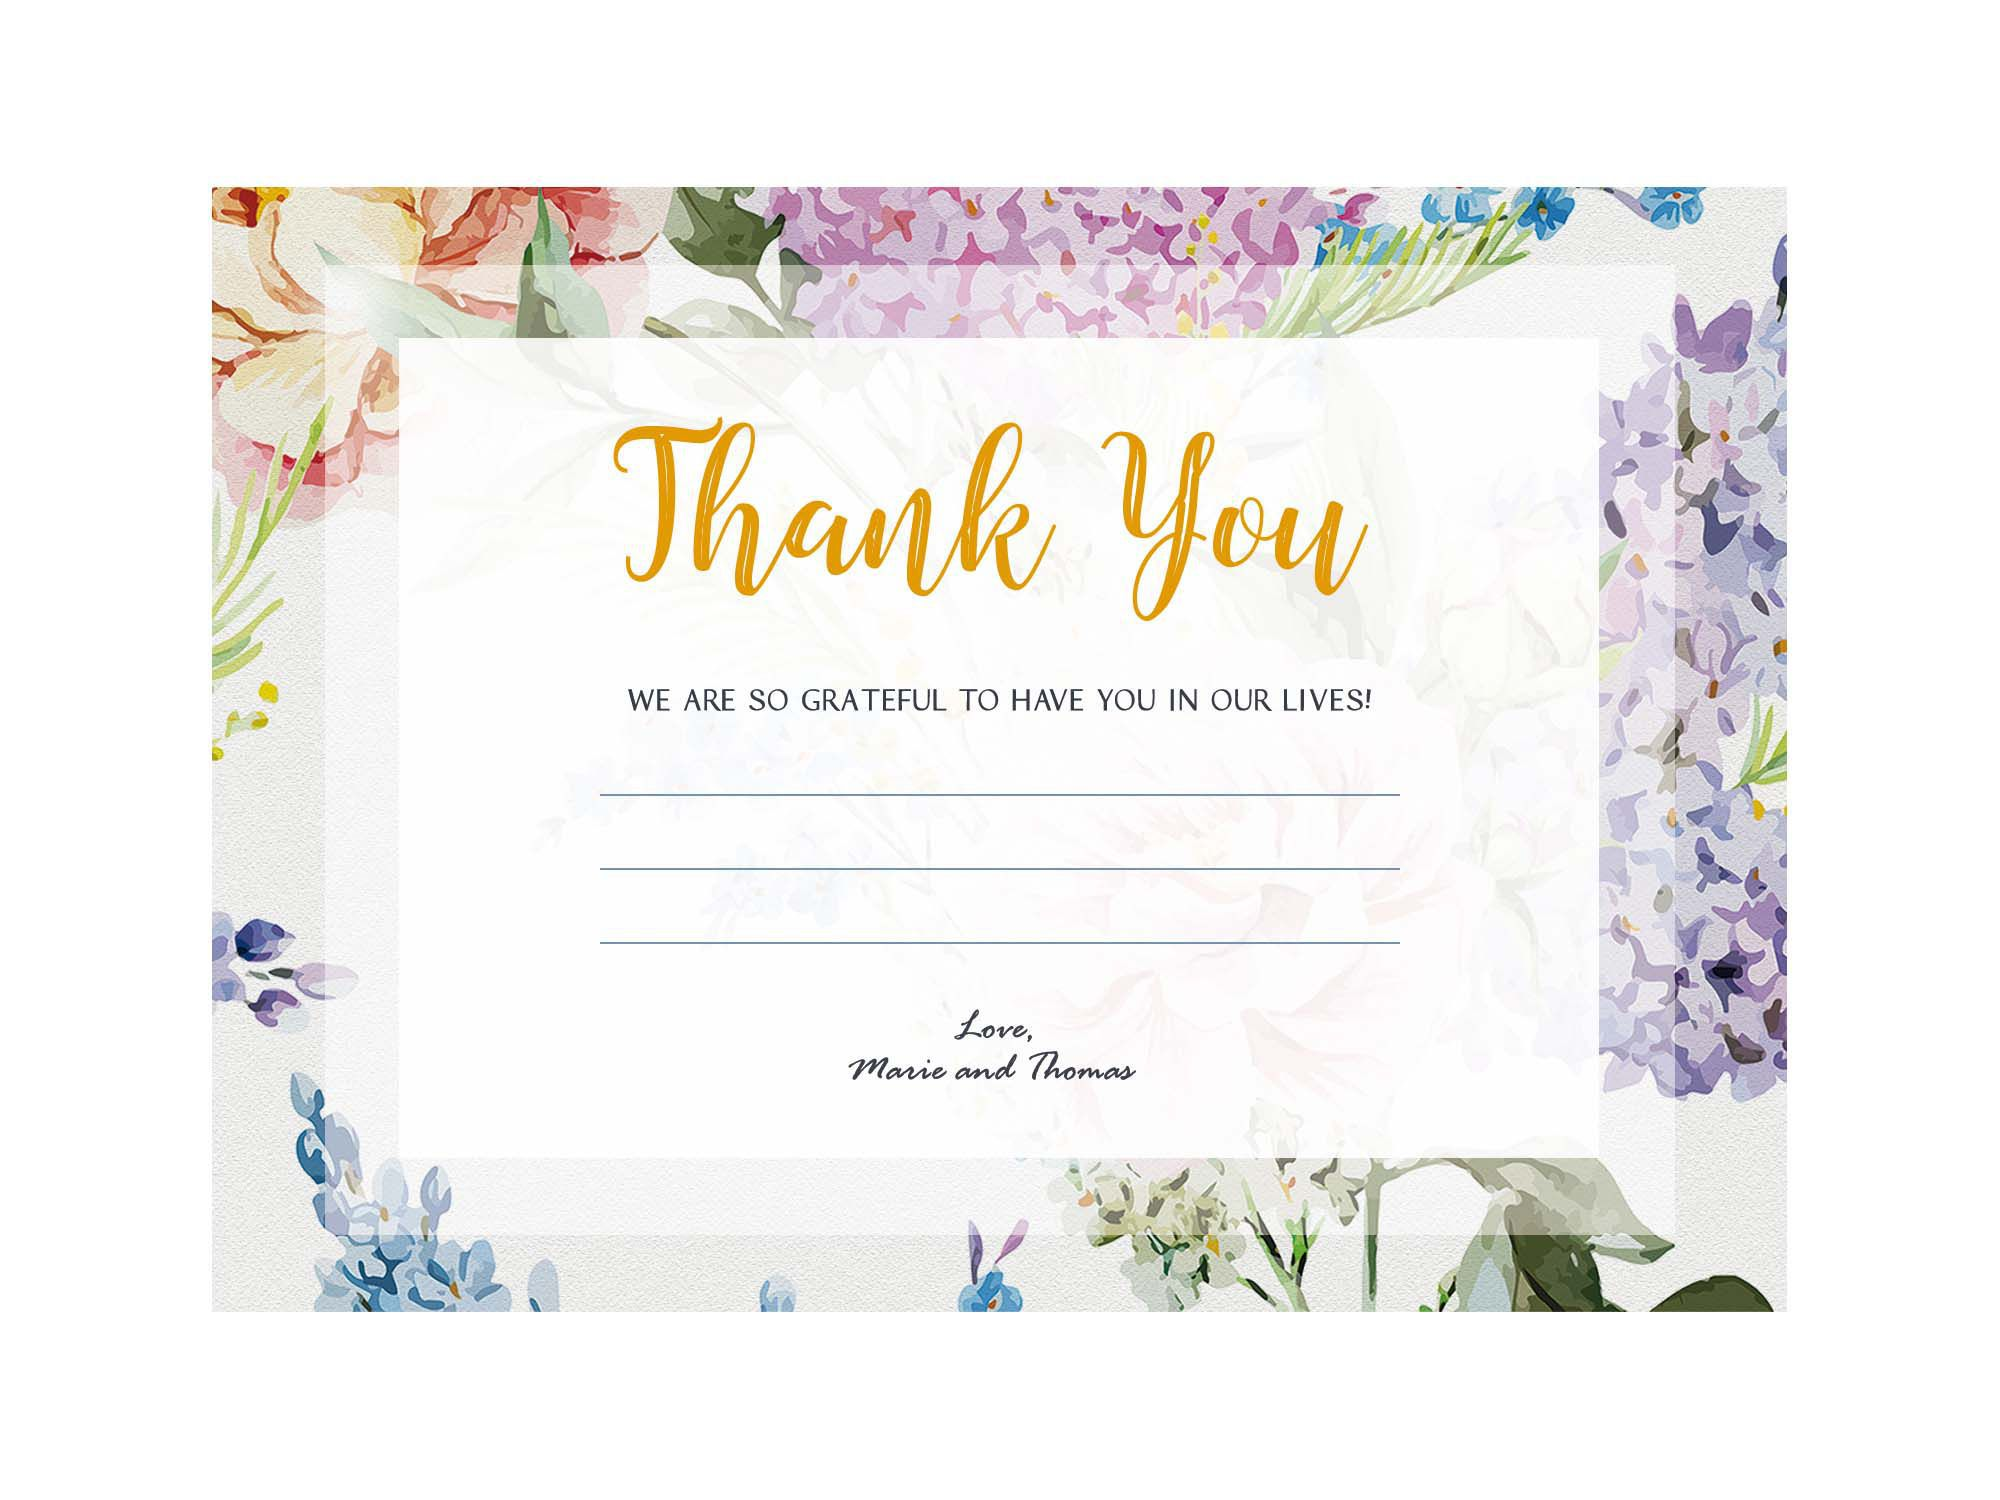 006 Archaicawful Wedding Thank You Card Template Psd Sample  FreeFull